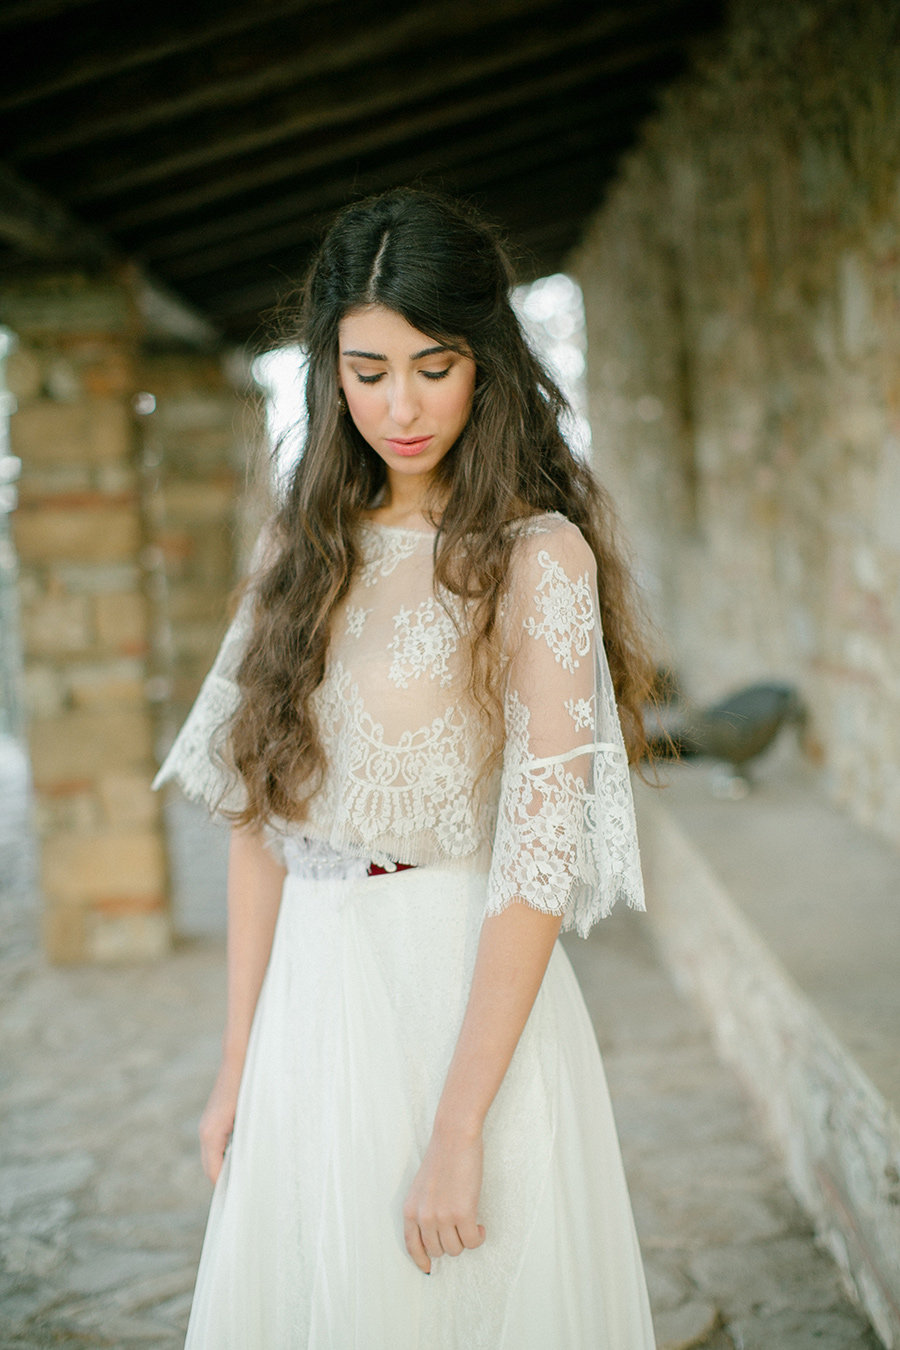 boho style wedding dresses greek wedding dresses greece inspired wedding dress with french chantilly lace styled shoot coordinated by love 4 wed